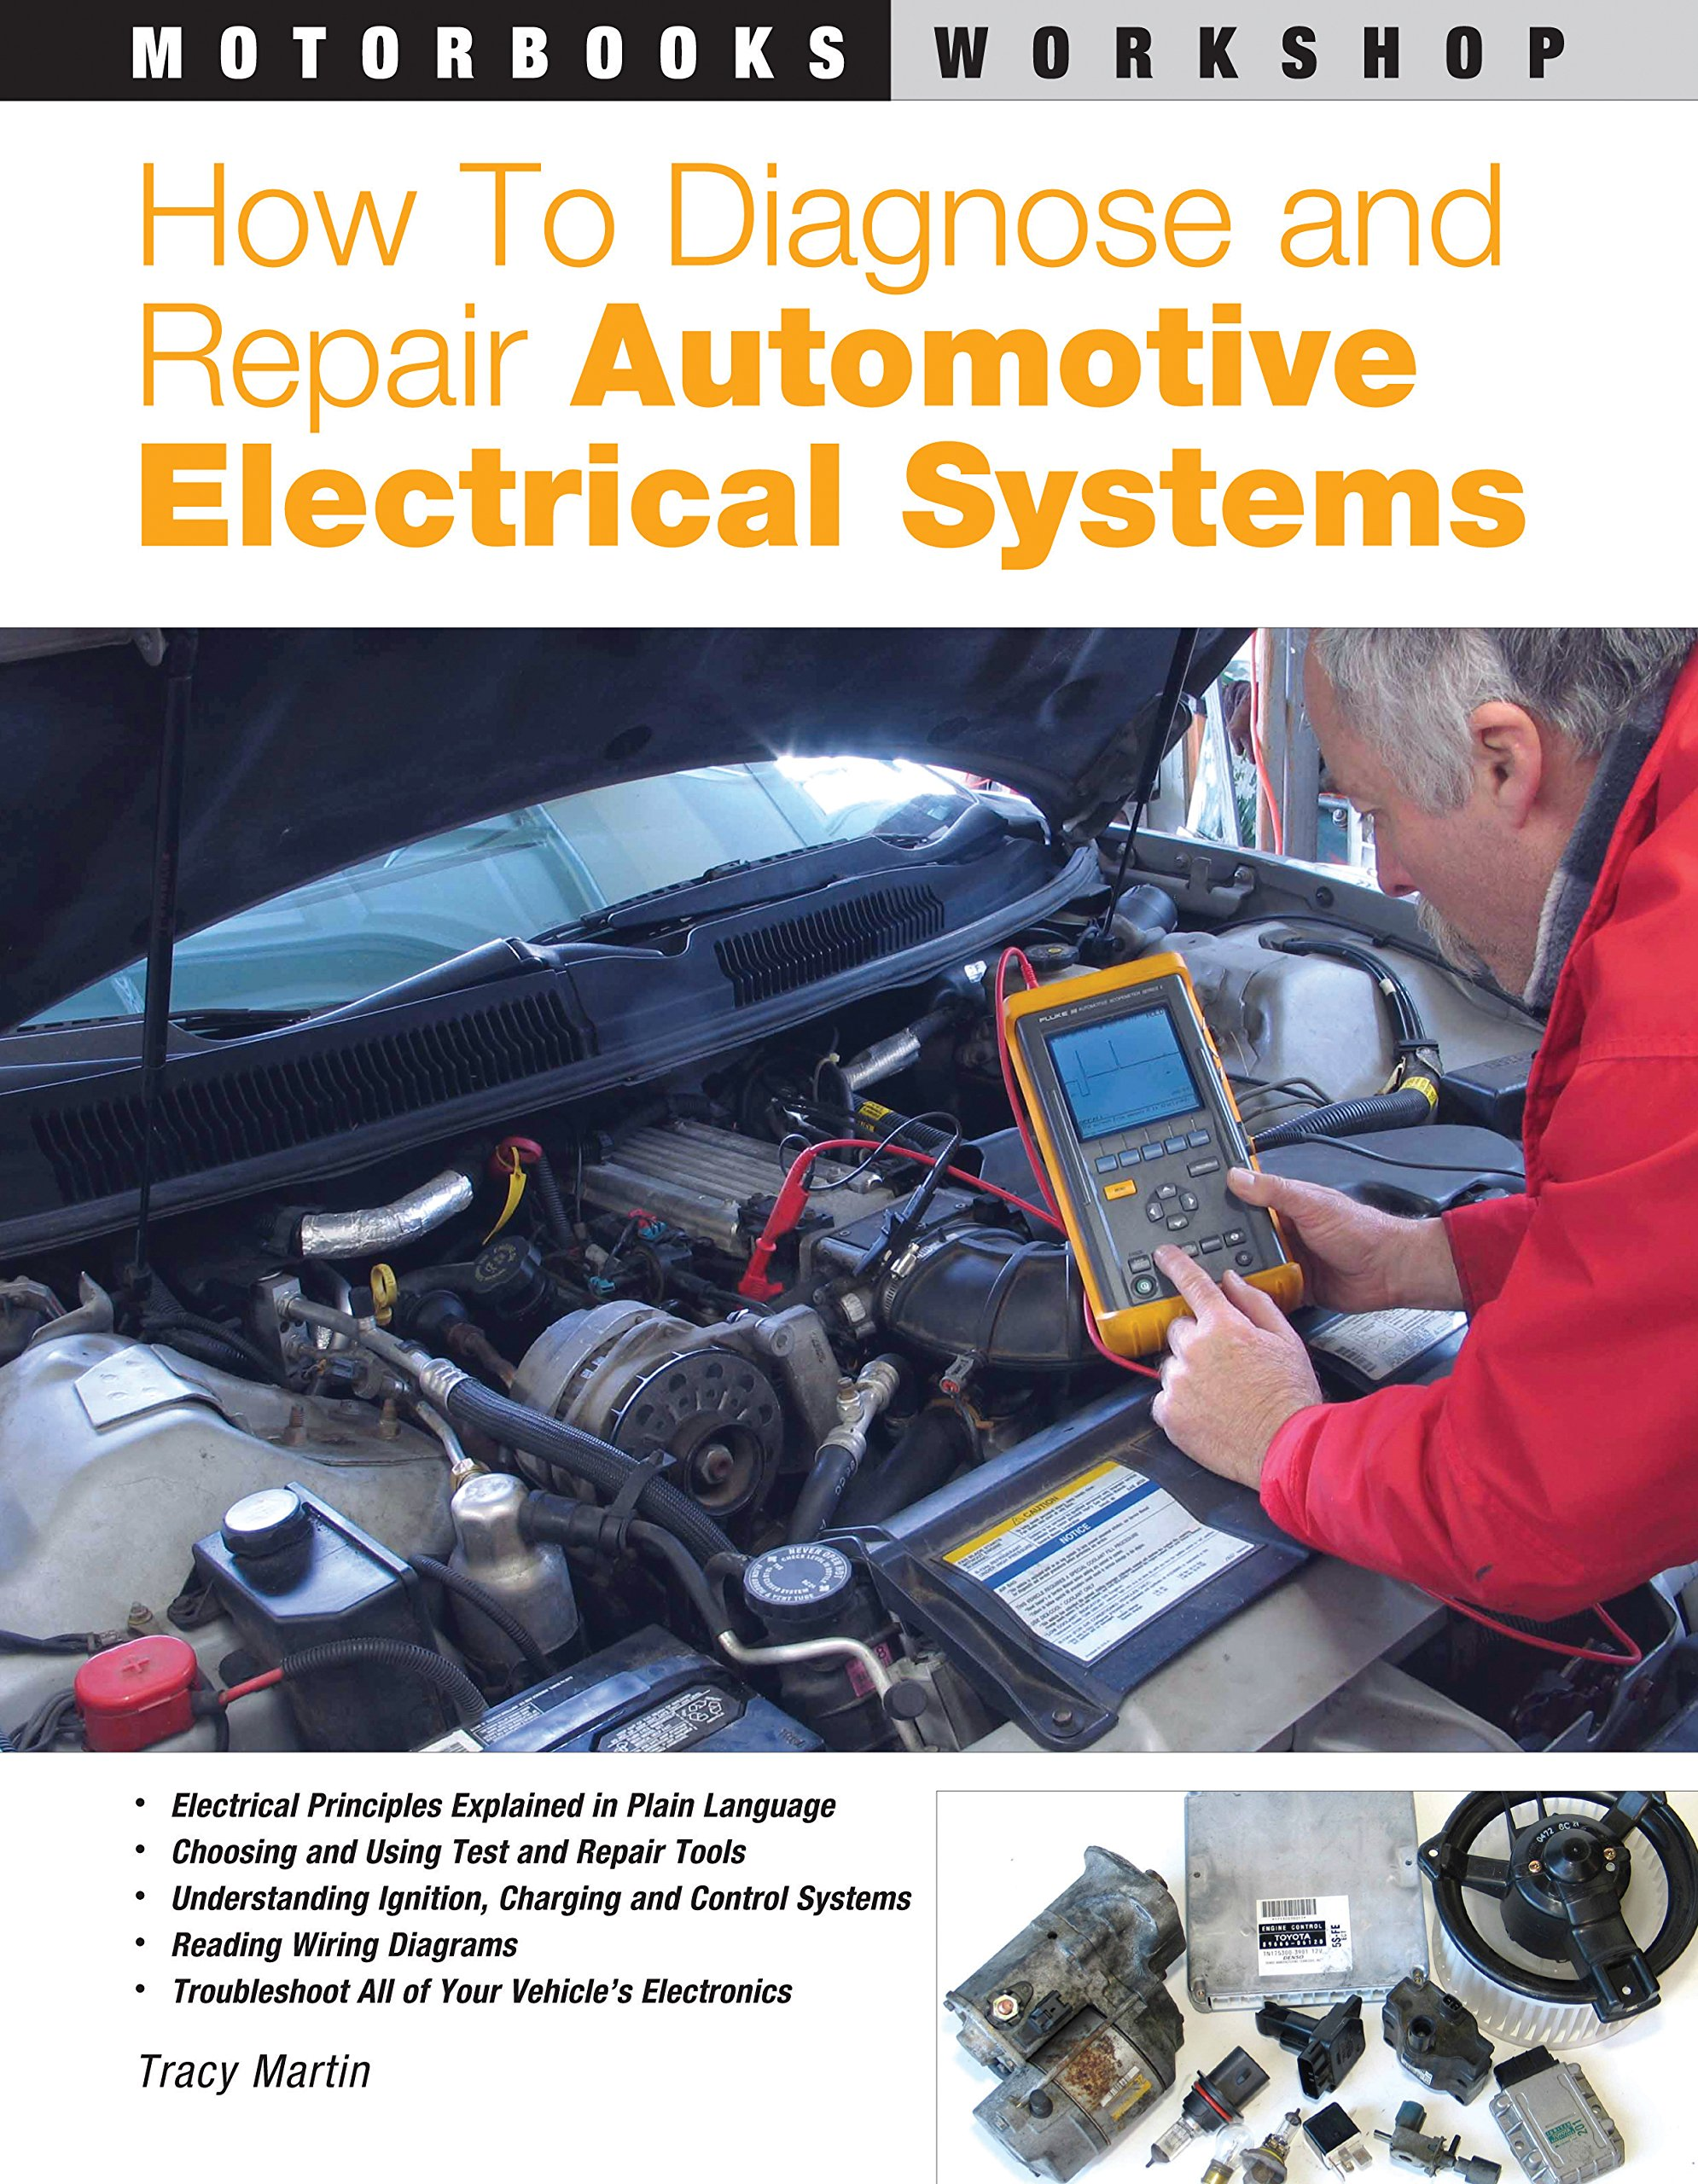 How To Diagnose And Repair Automotive Electrical Systems Motorbooks Make Typical Dynamo Electricians Forums Workshop Tracy Martin 8601404402180 Books